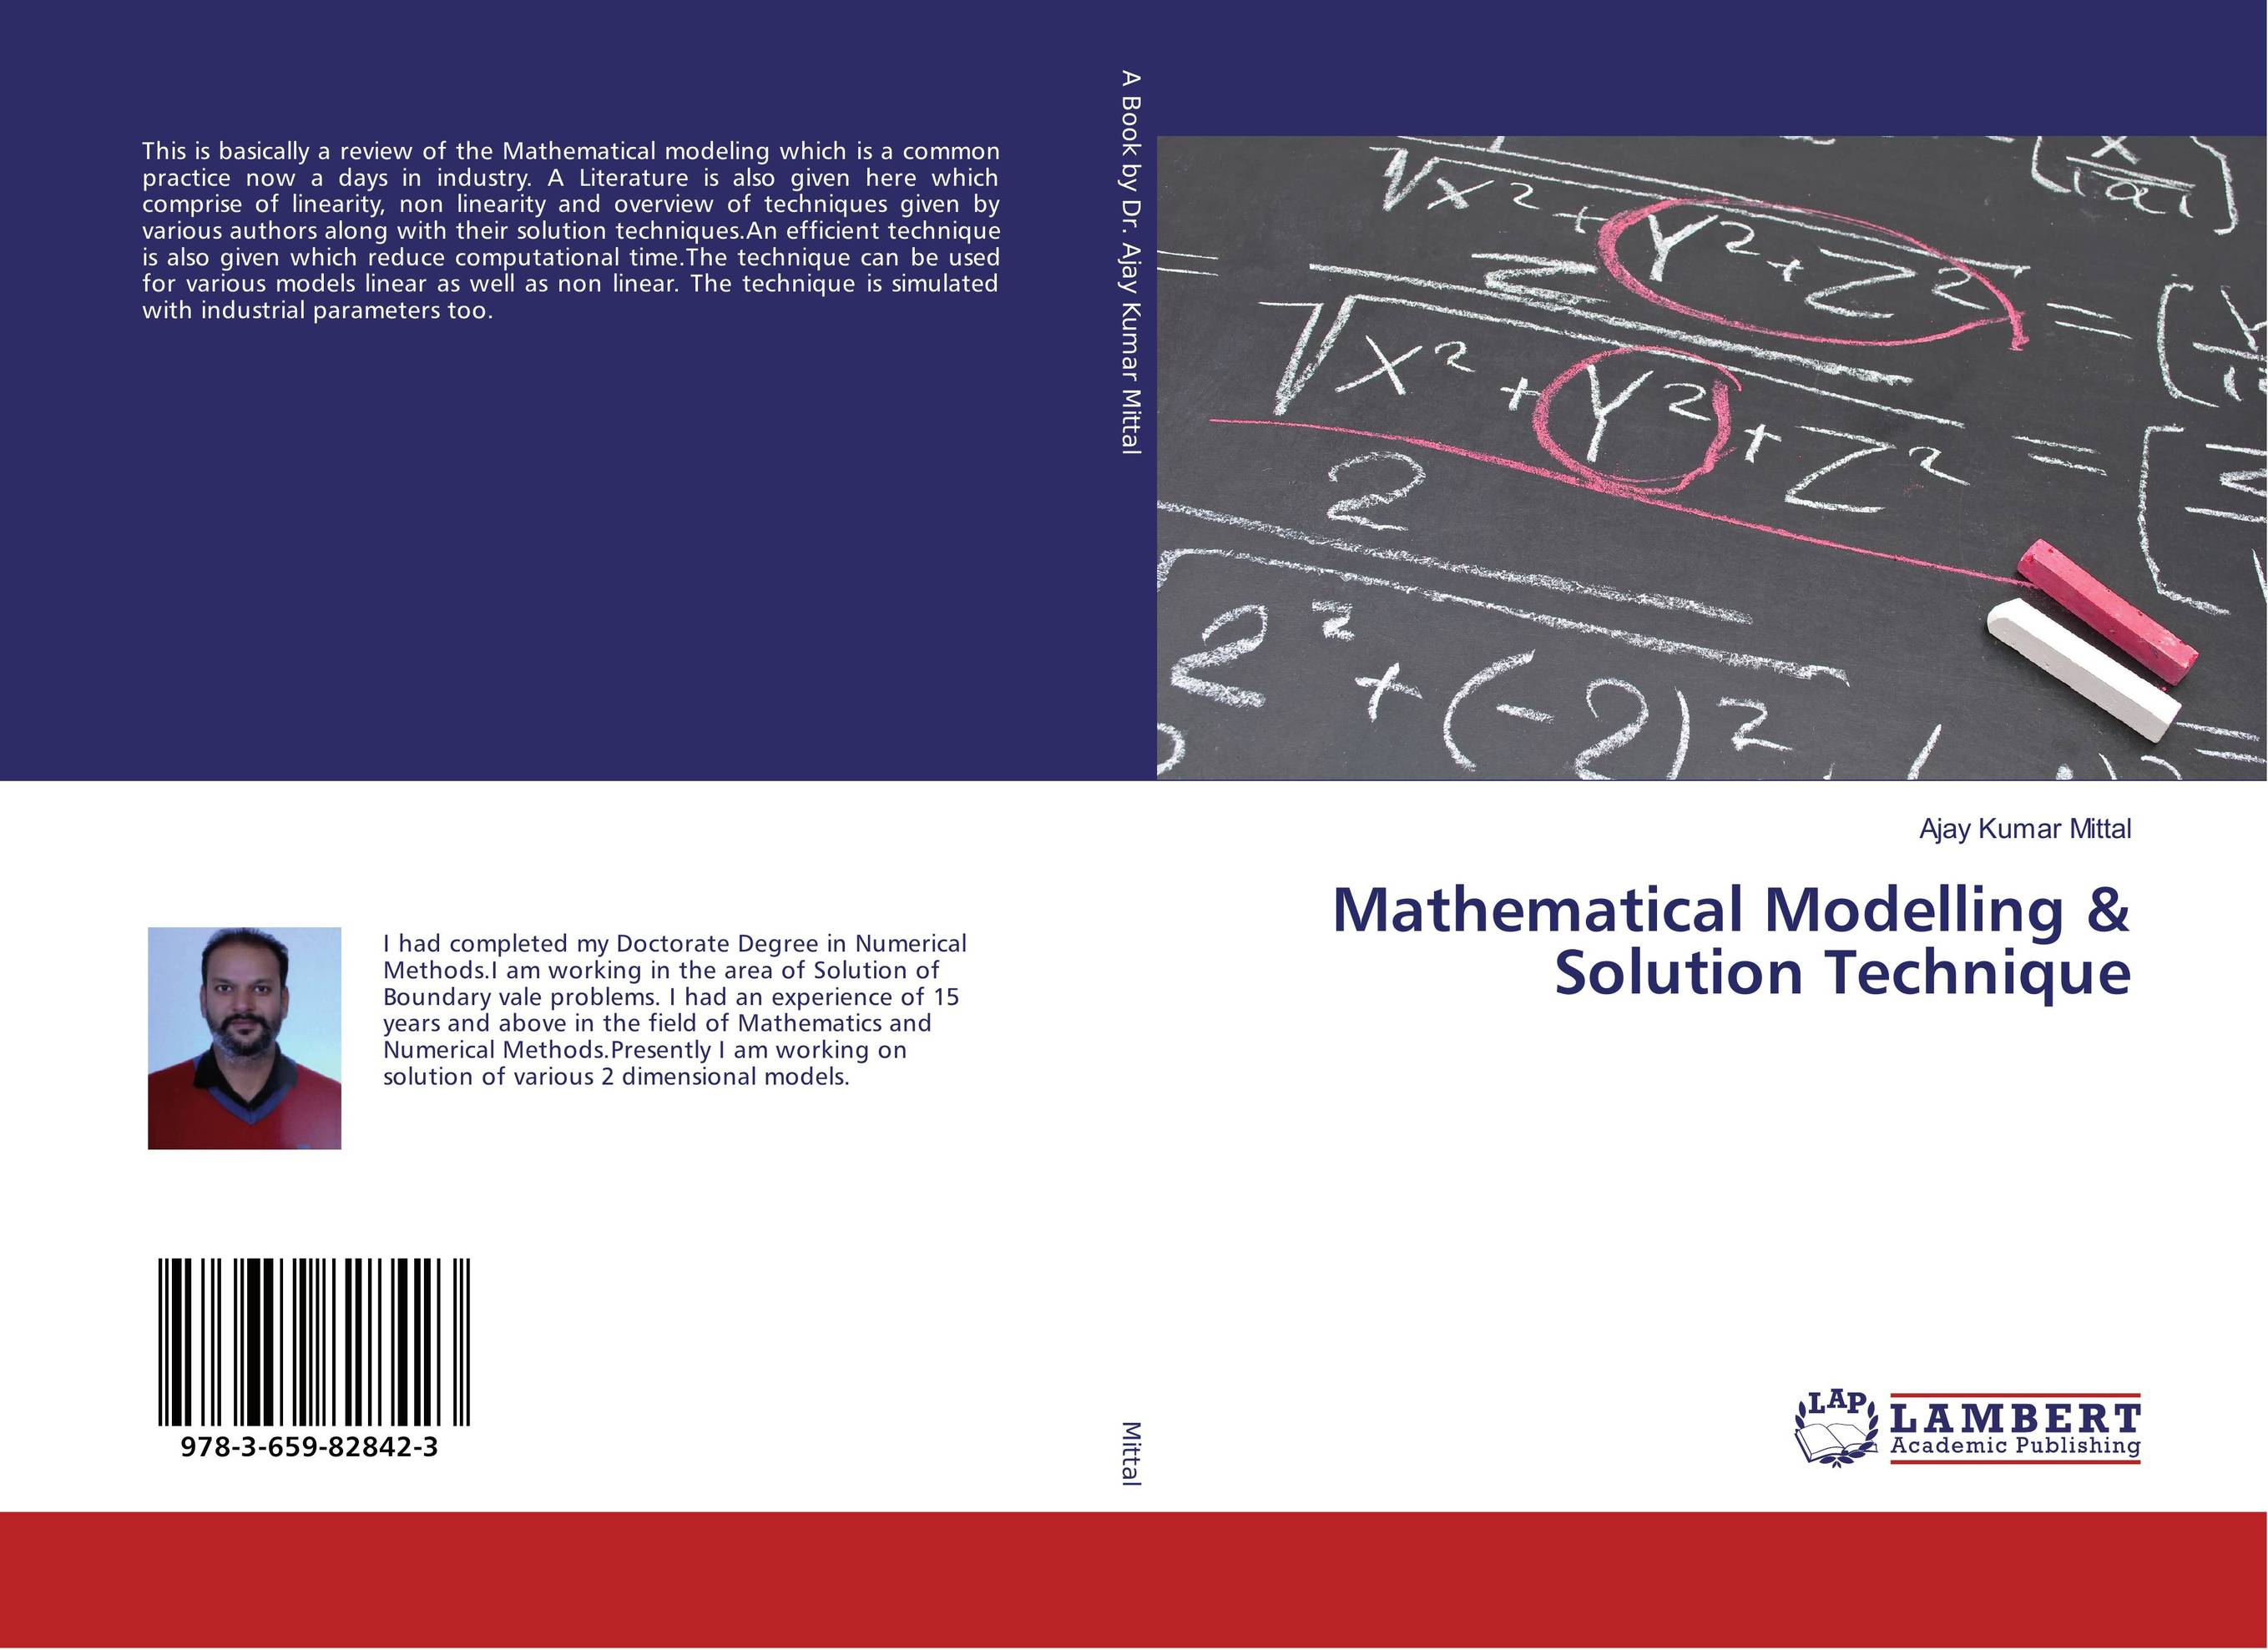 mathematics modelling coursework The mathematics department at ucl is at the forefront of research and this course will allow students to experience the excitement of obtaining solutions to complex physical and other problems students will initially consolidate their mathematical knowledge and formulate basic concepts of modelling before moving on to case studies in which.